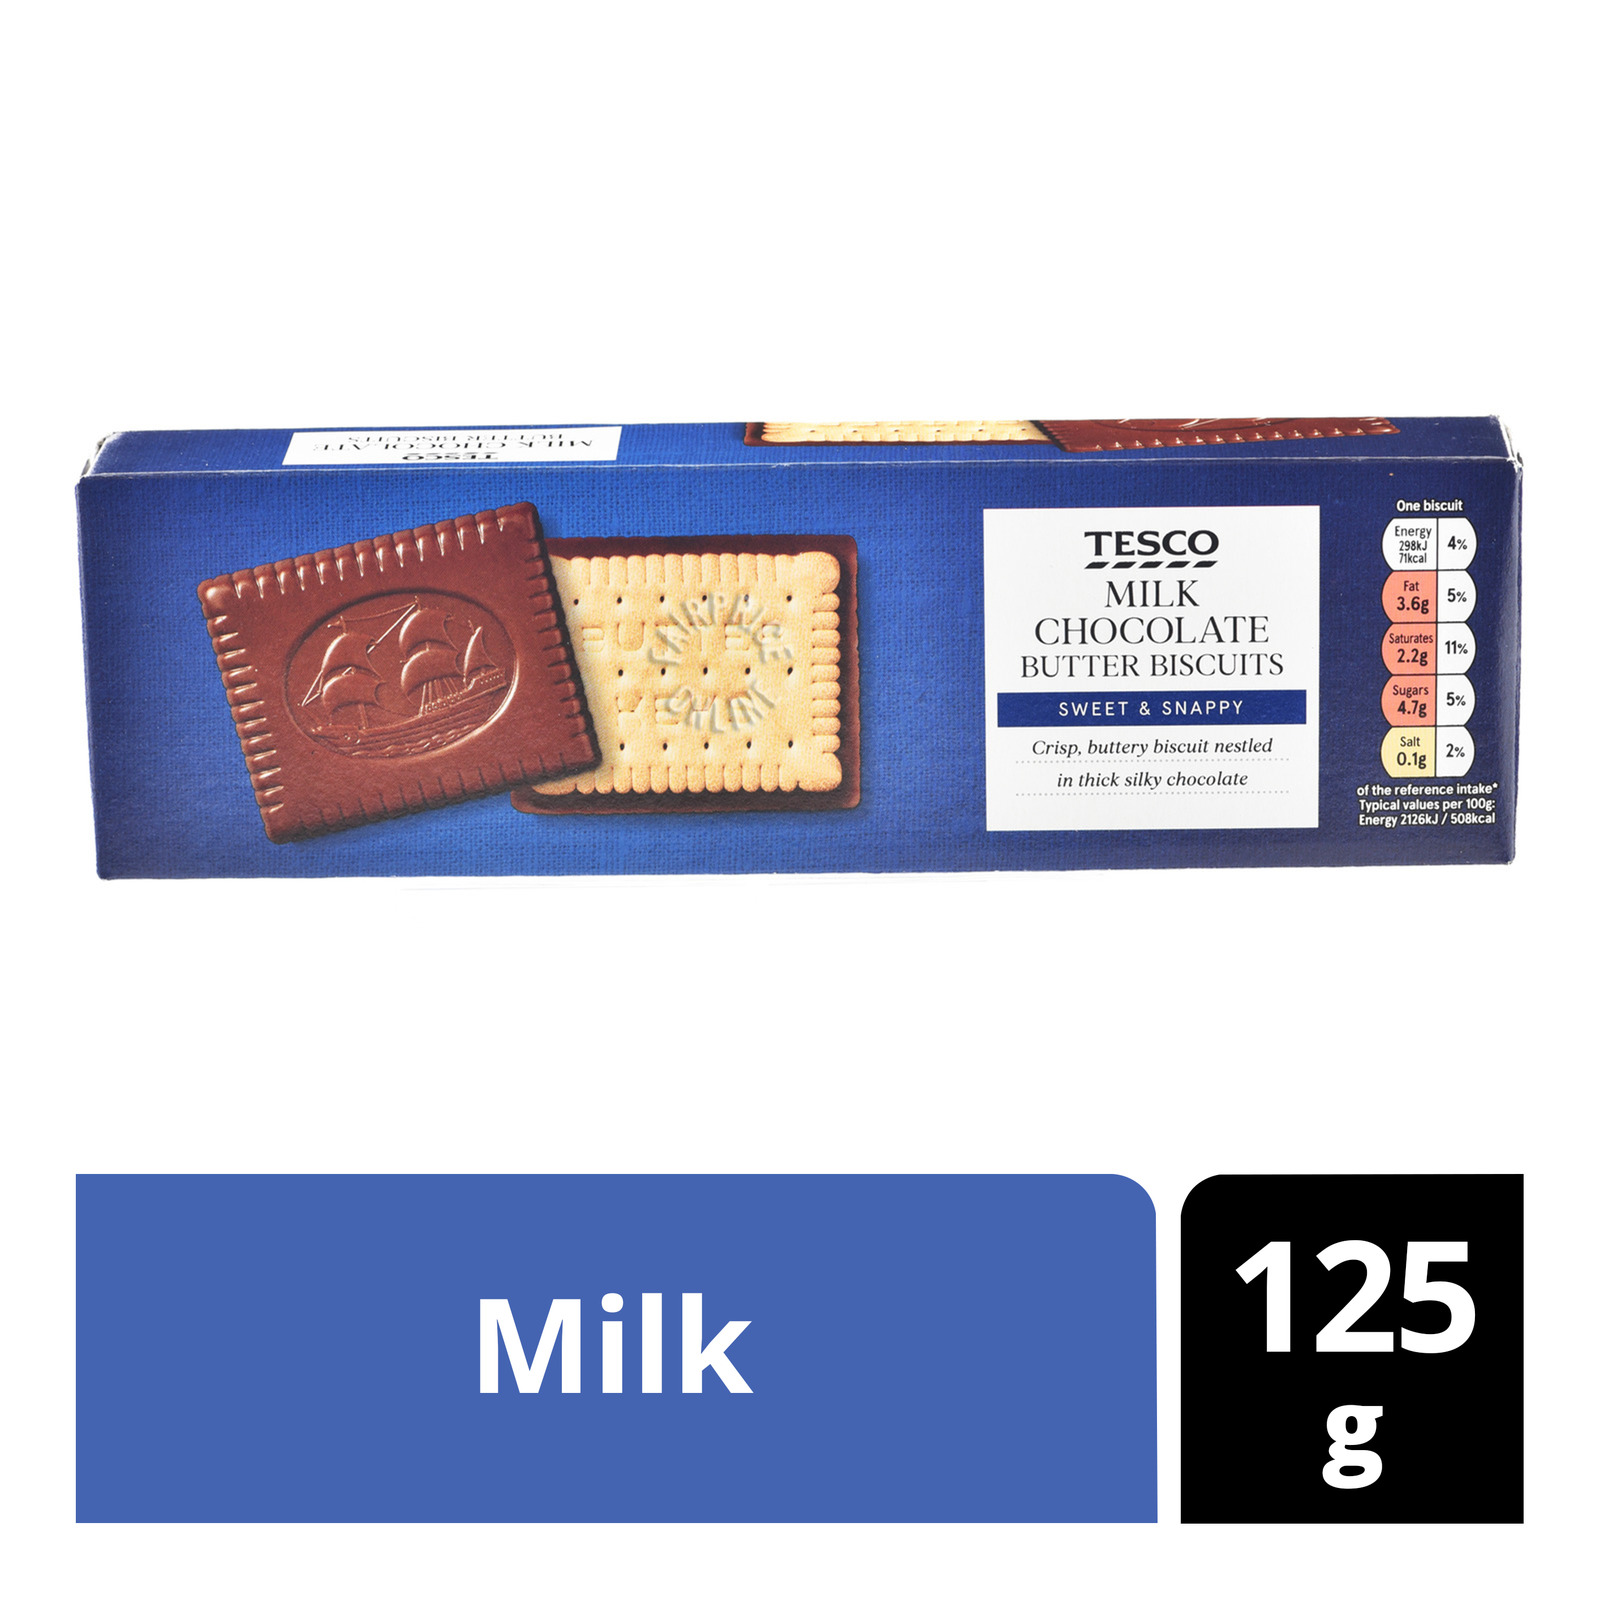 Tesco Chocolate Butter Biscuits - Milk